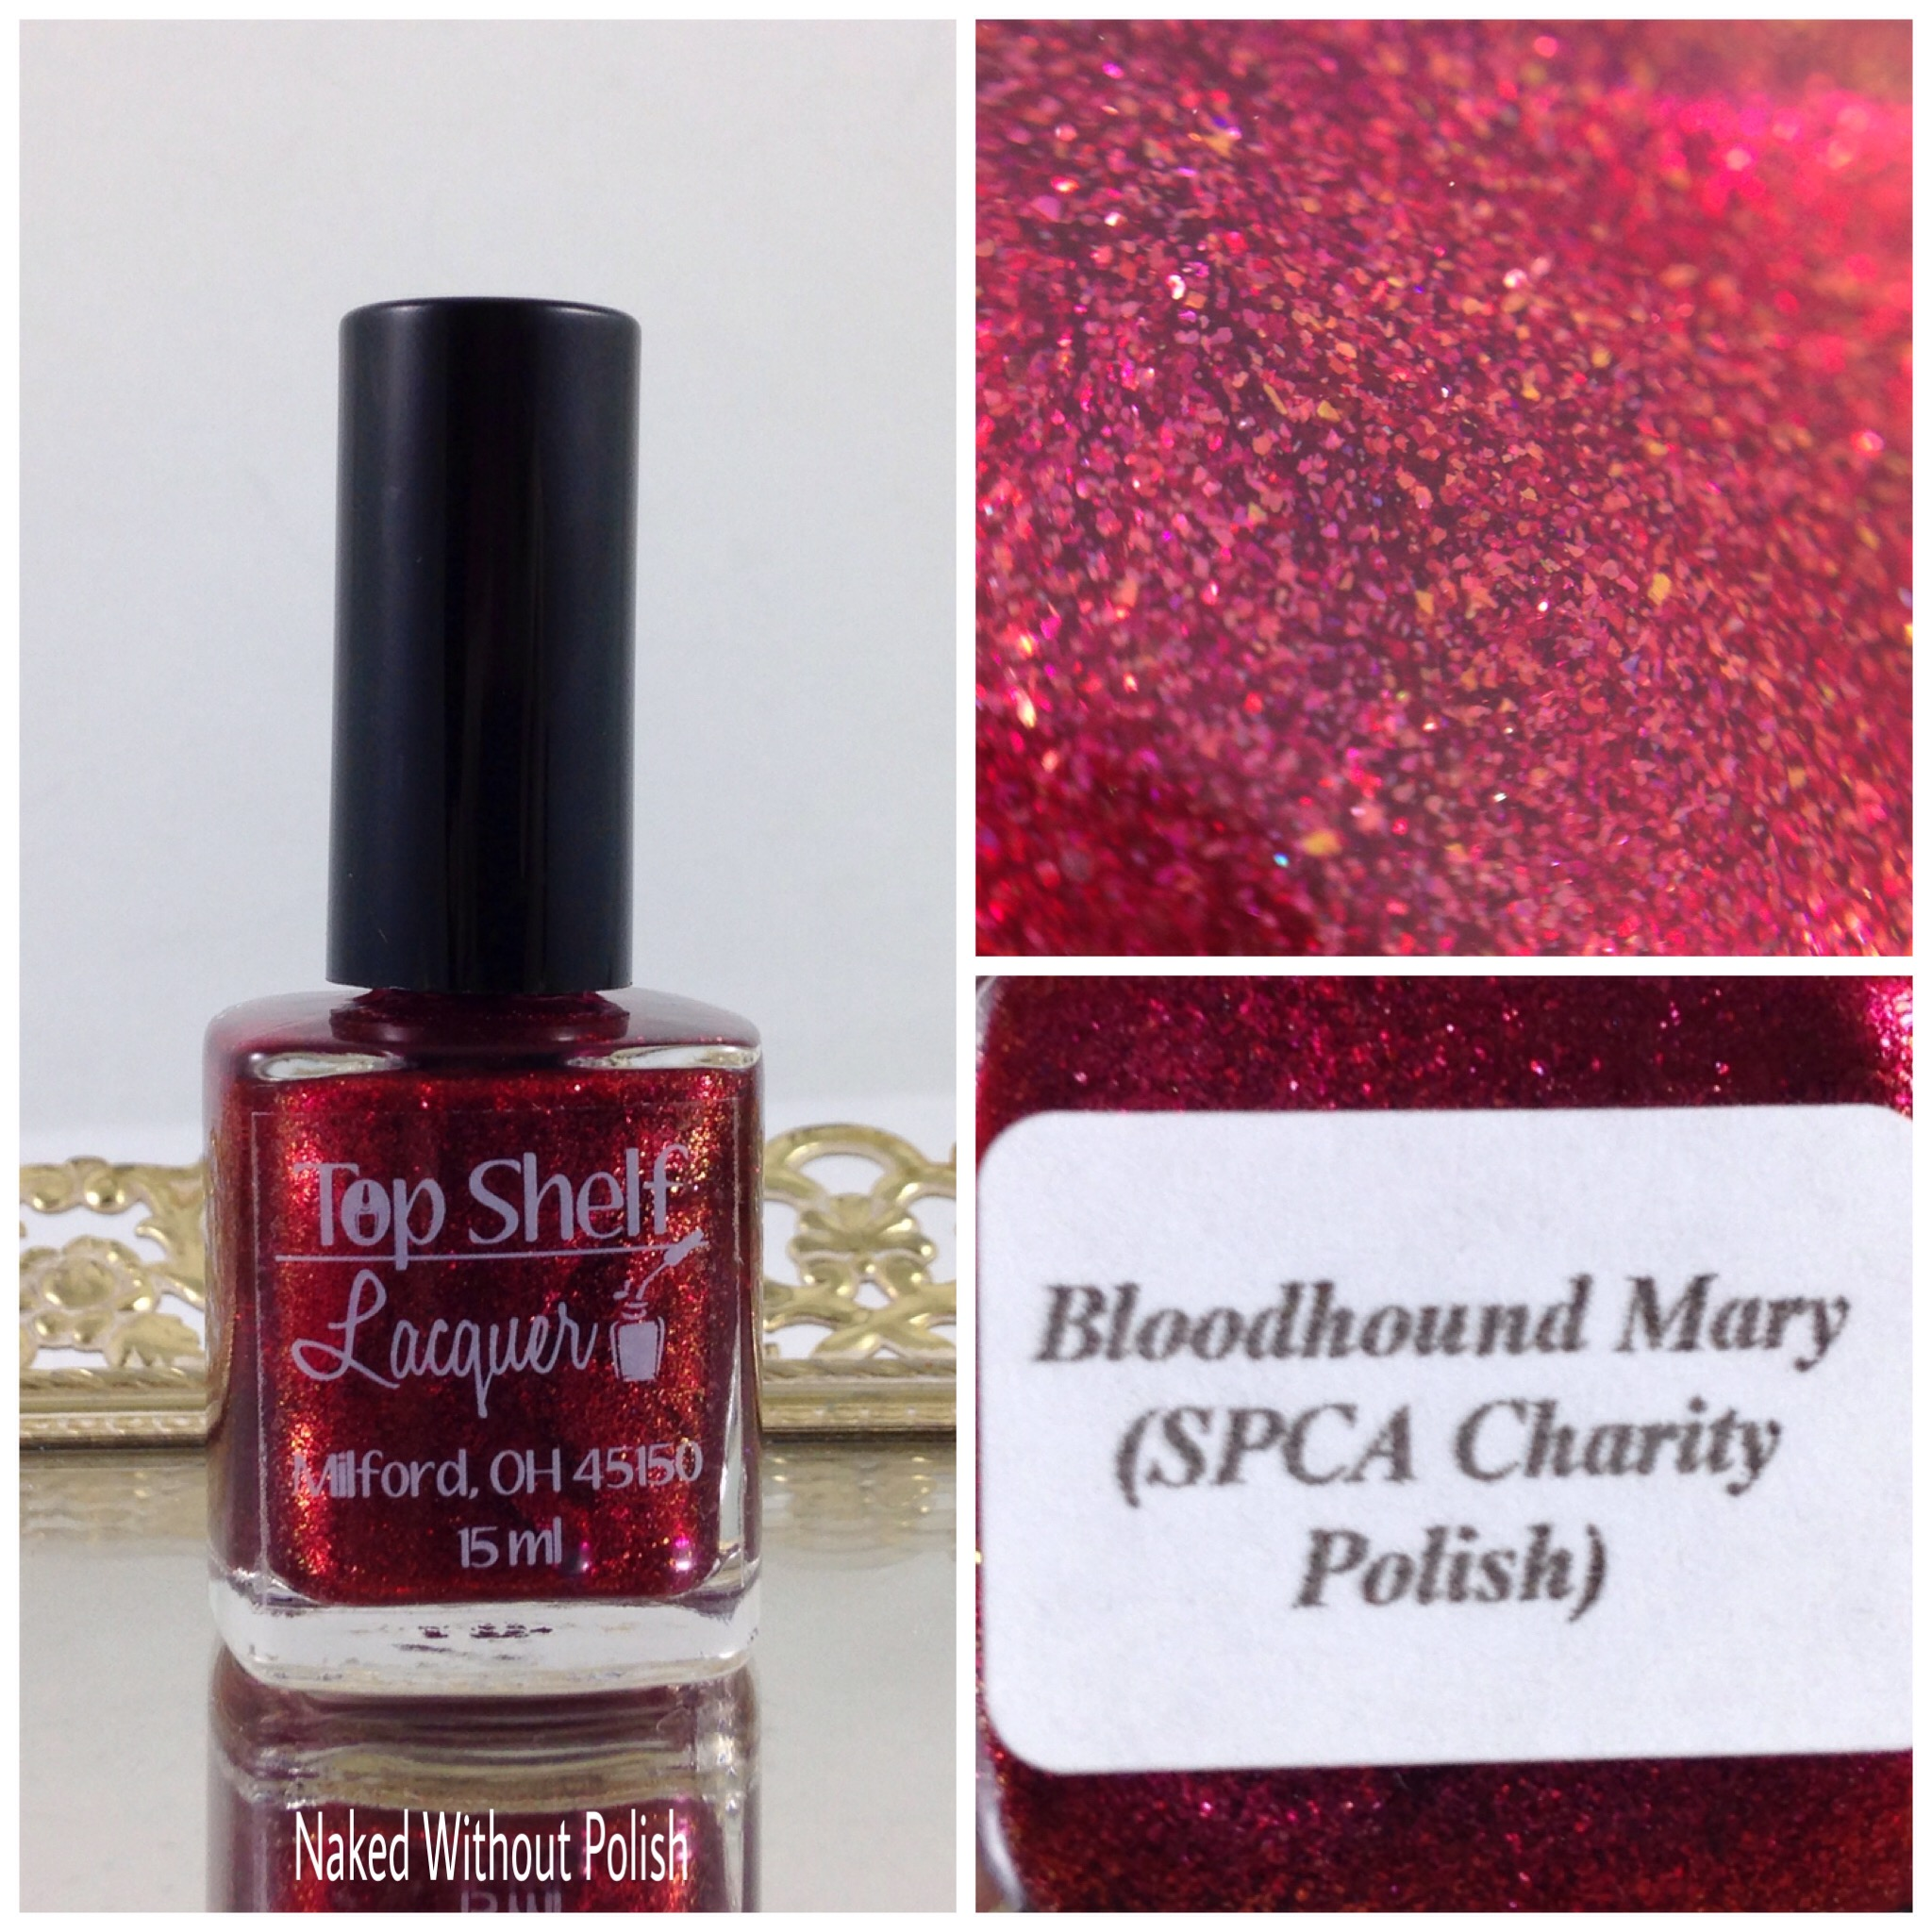 Top-Shelf-Lacquer-Bloodhound-Mary-1